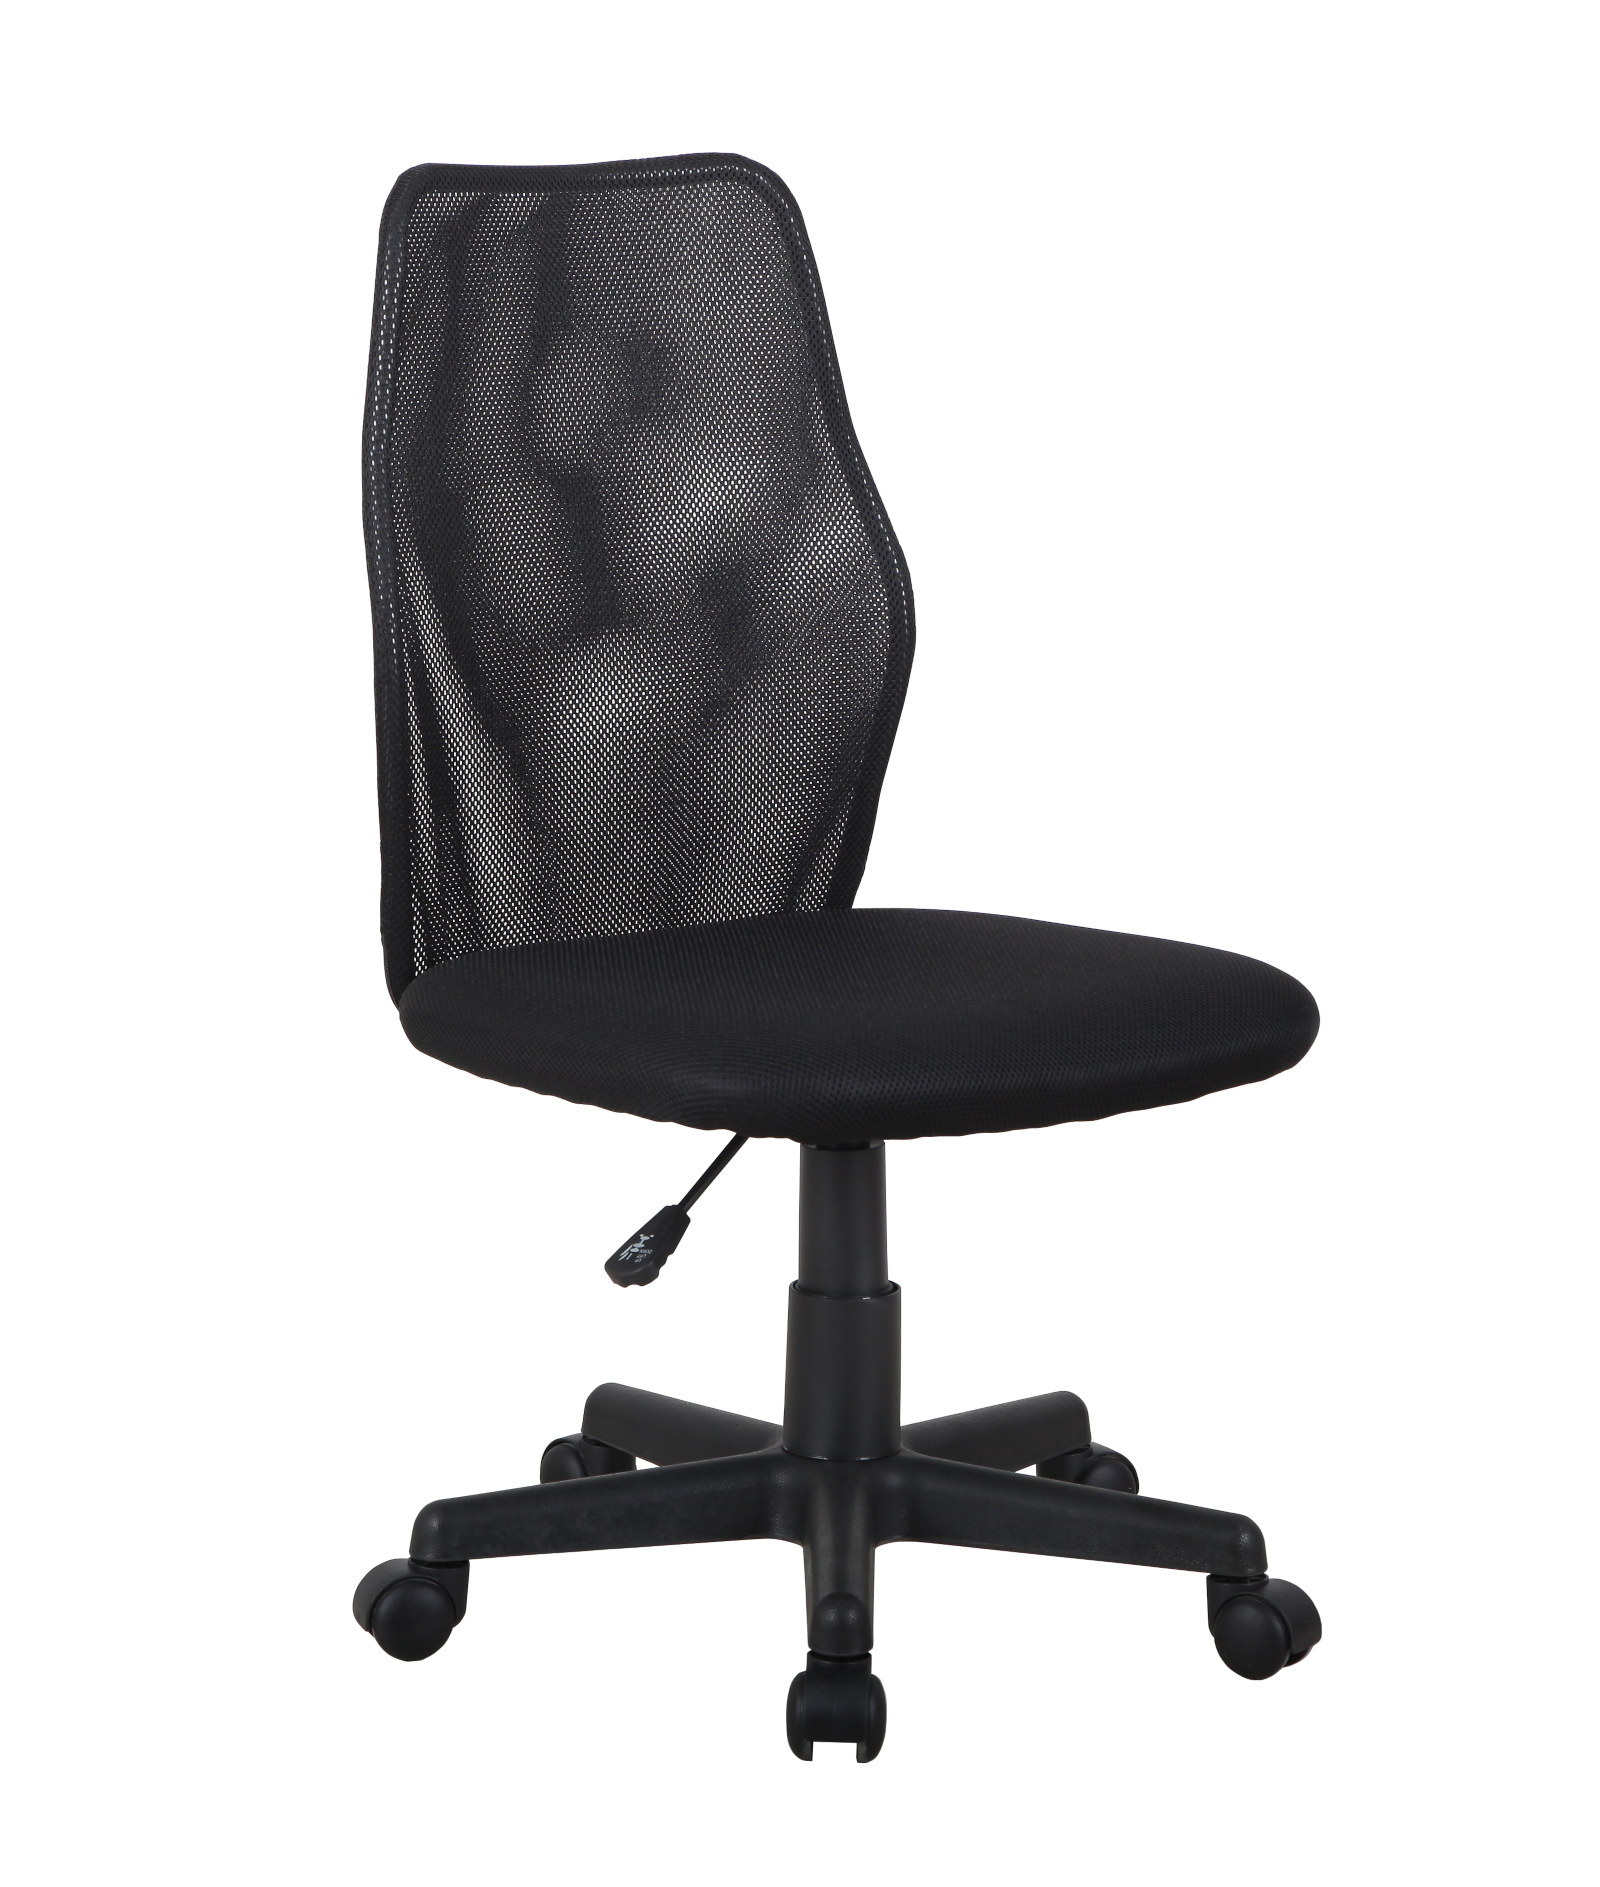 23106 – Office Chair Black – BX-8373